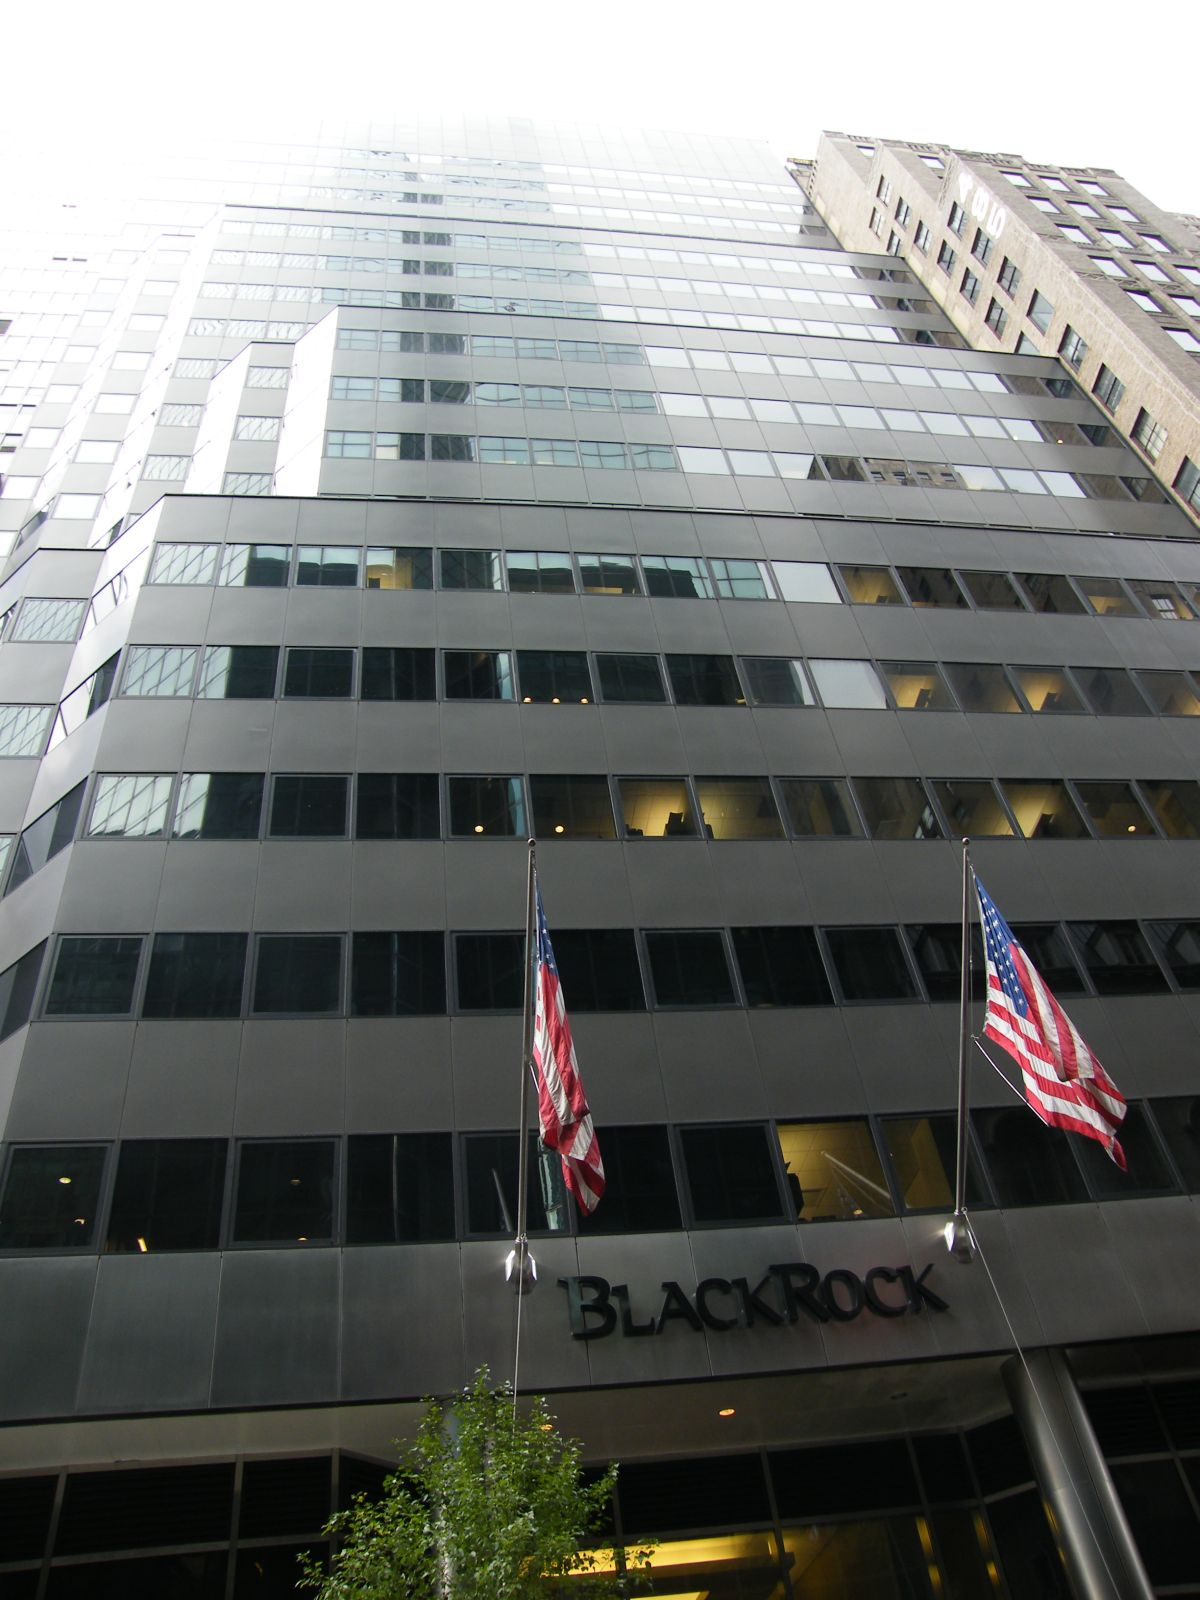 BlackRock – Wikipedia